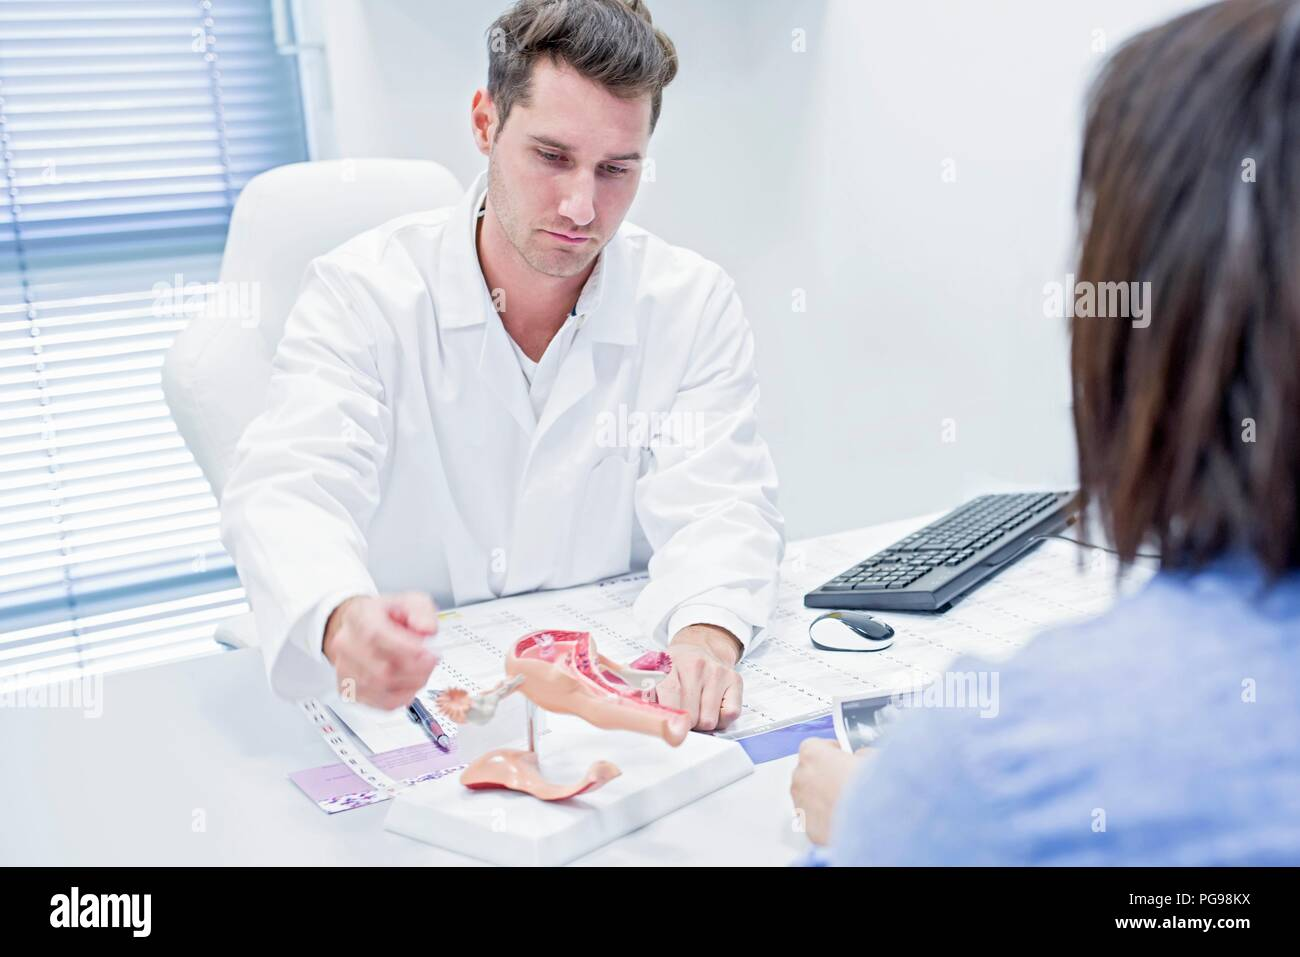 Fertility clinic consultation. Doctor showing a patient a model of the female reproductive tract. - Stock Image